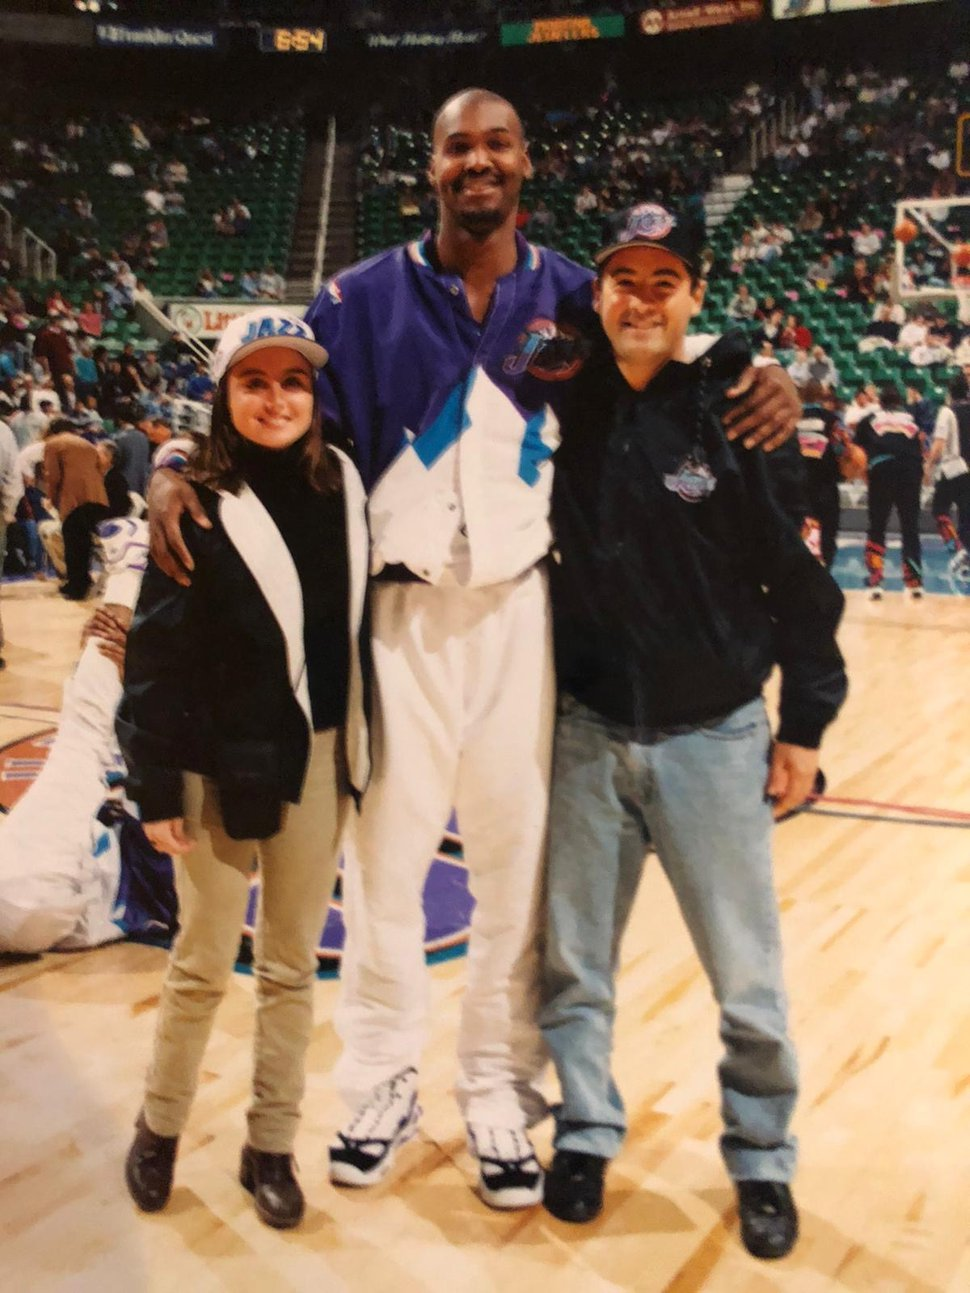 (Photo courtesy of Marcelo de Vida) Marcela de Vida, who lives in Uruguay, says he is a big Utah Jazz fan and that he's saddened by former coach Jerry Sloan's death.